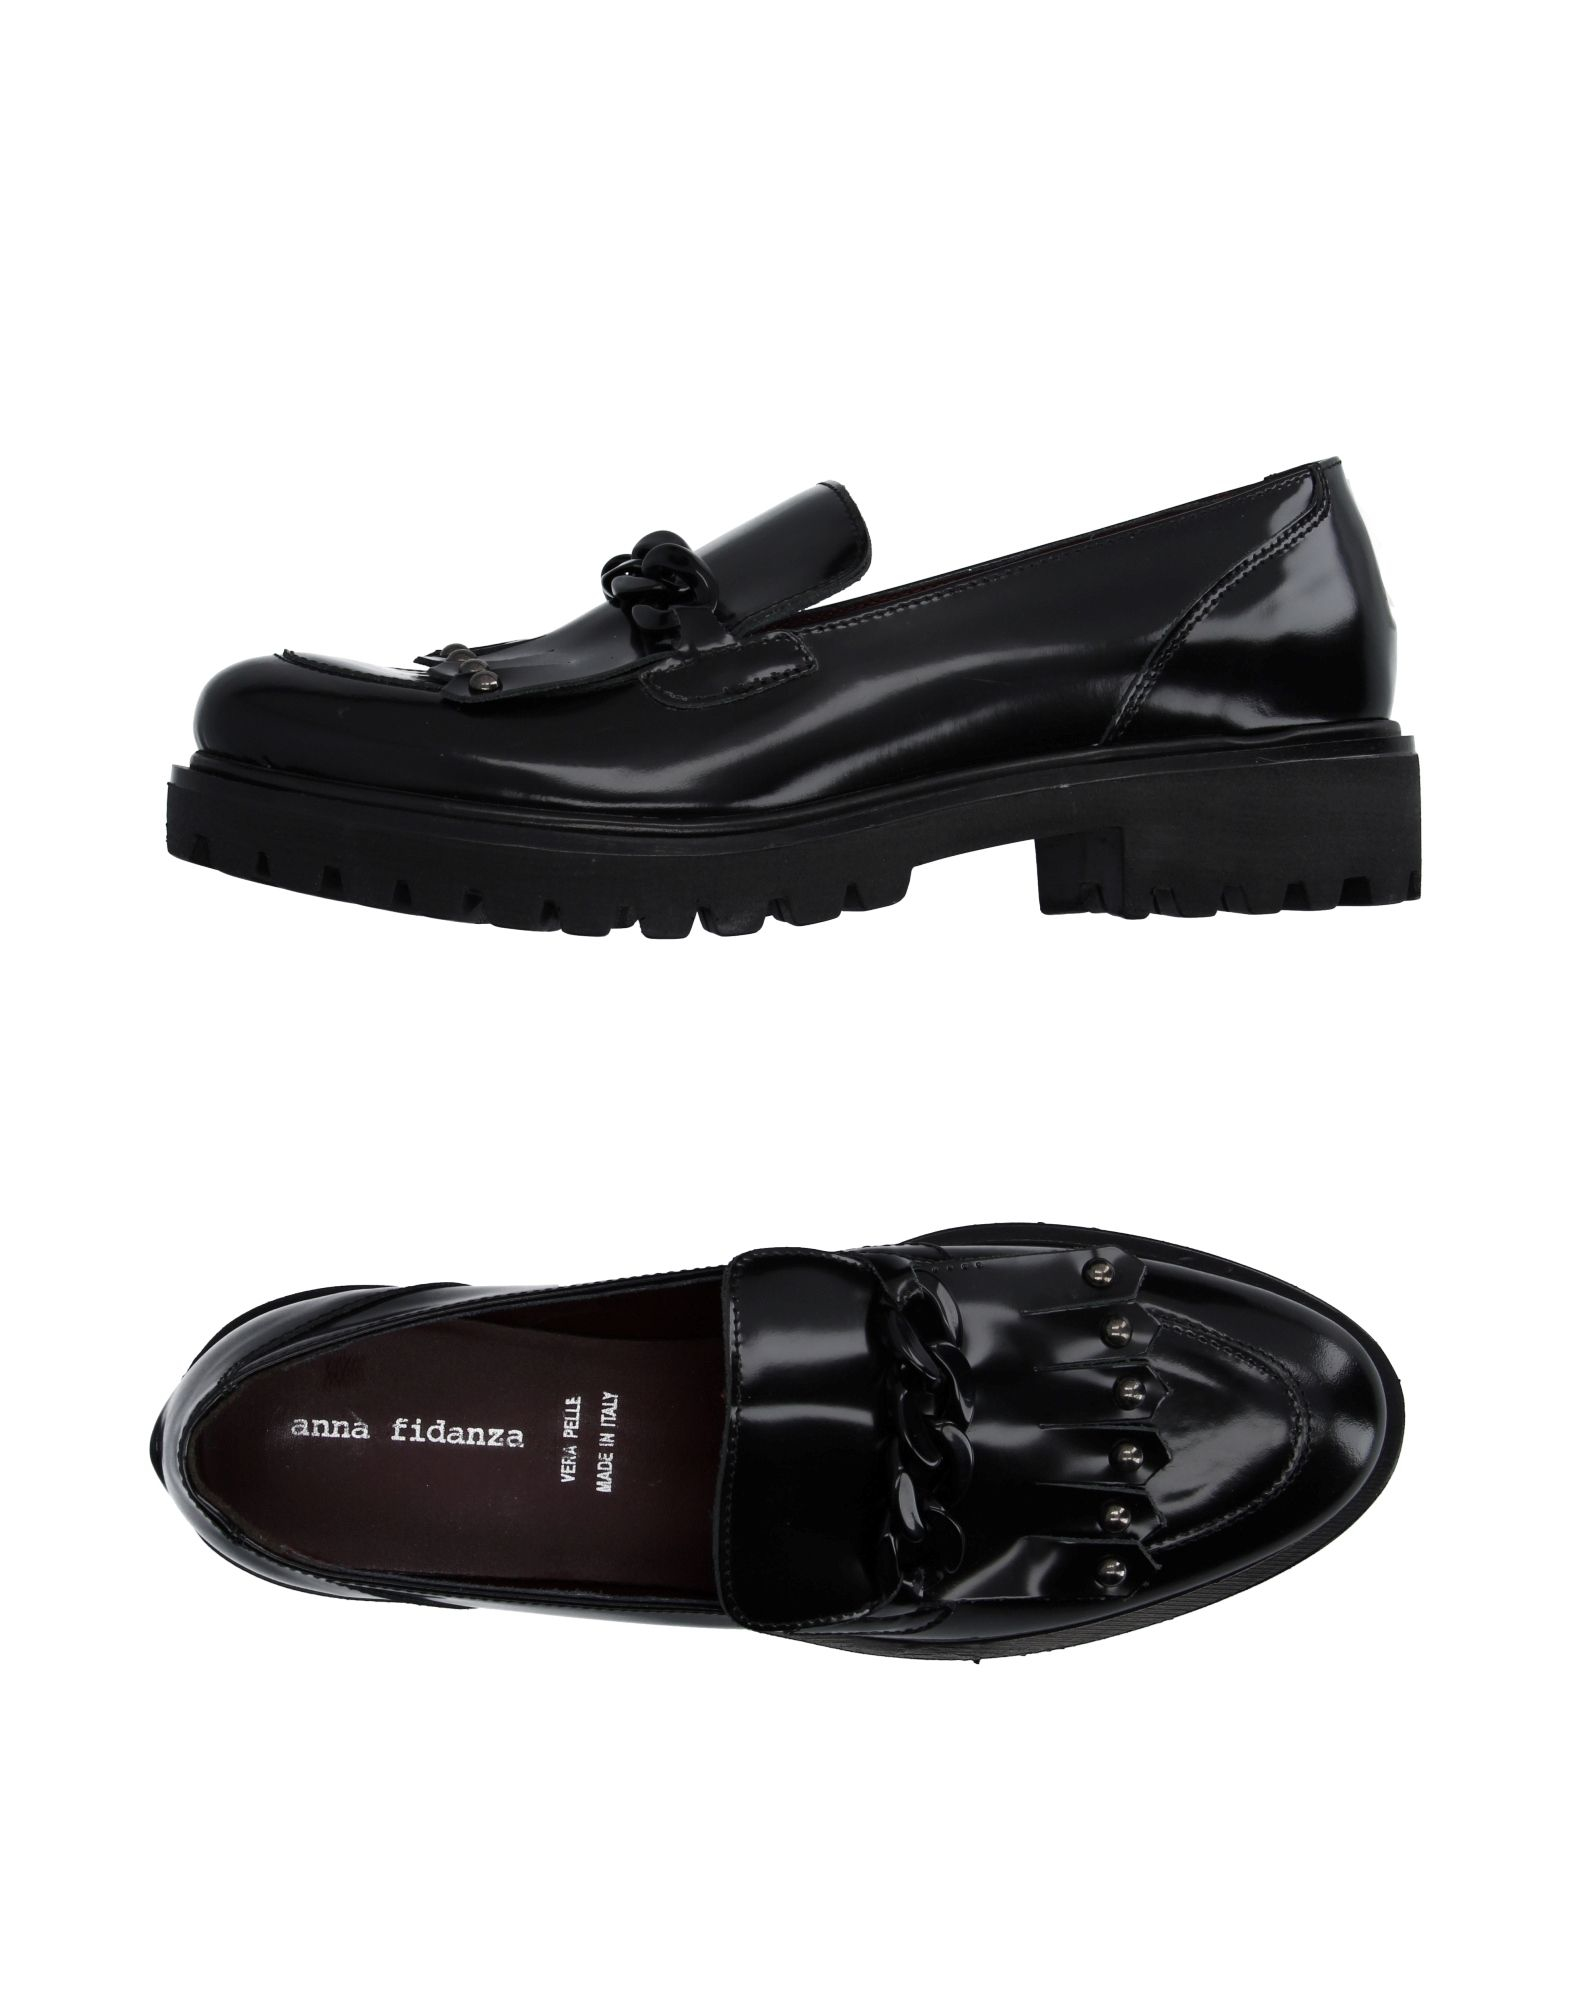 ANNA FIDANZA Loafers free shipping authentic clearance online fake clearance finishline NZPghfSkx